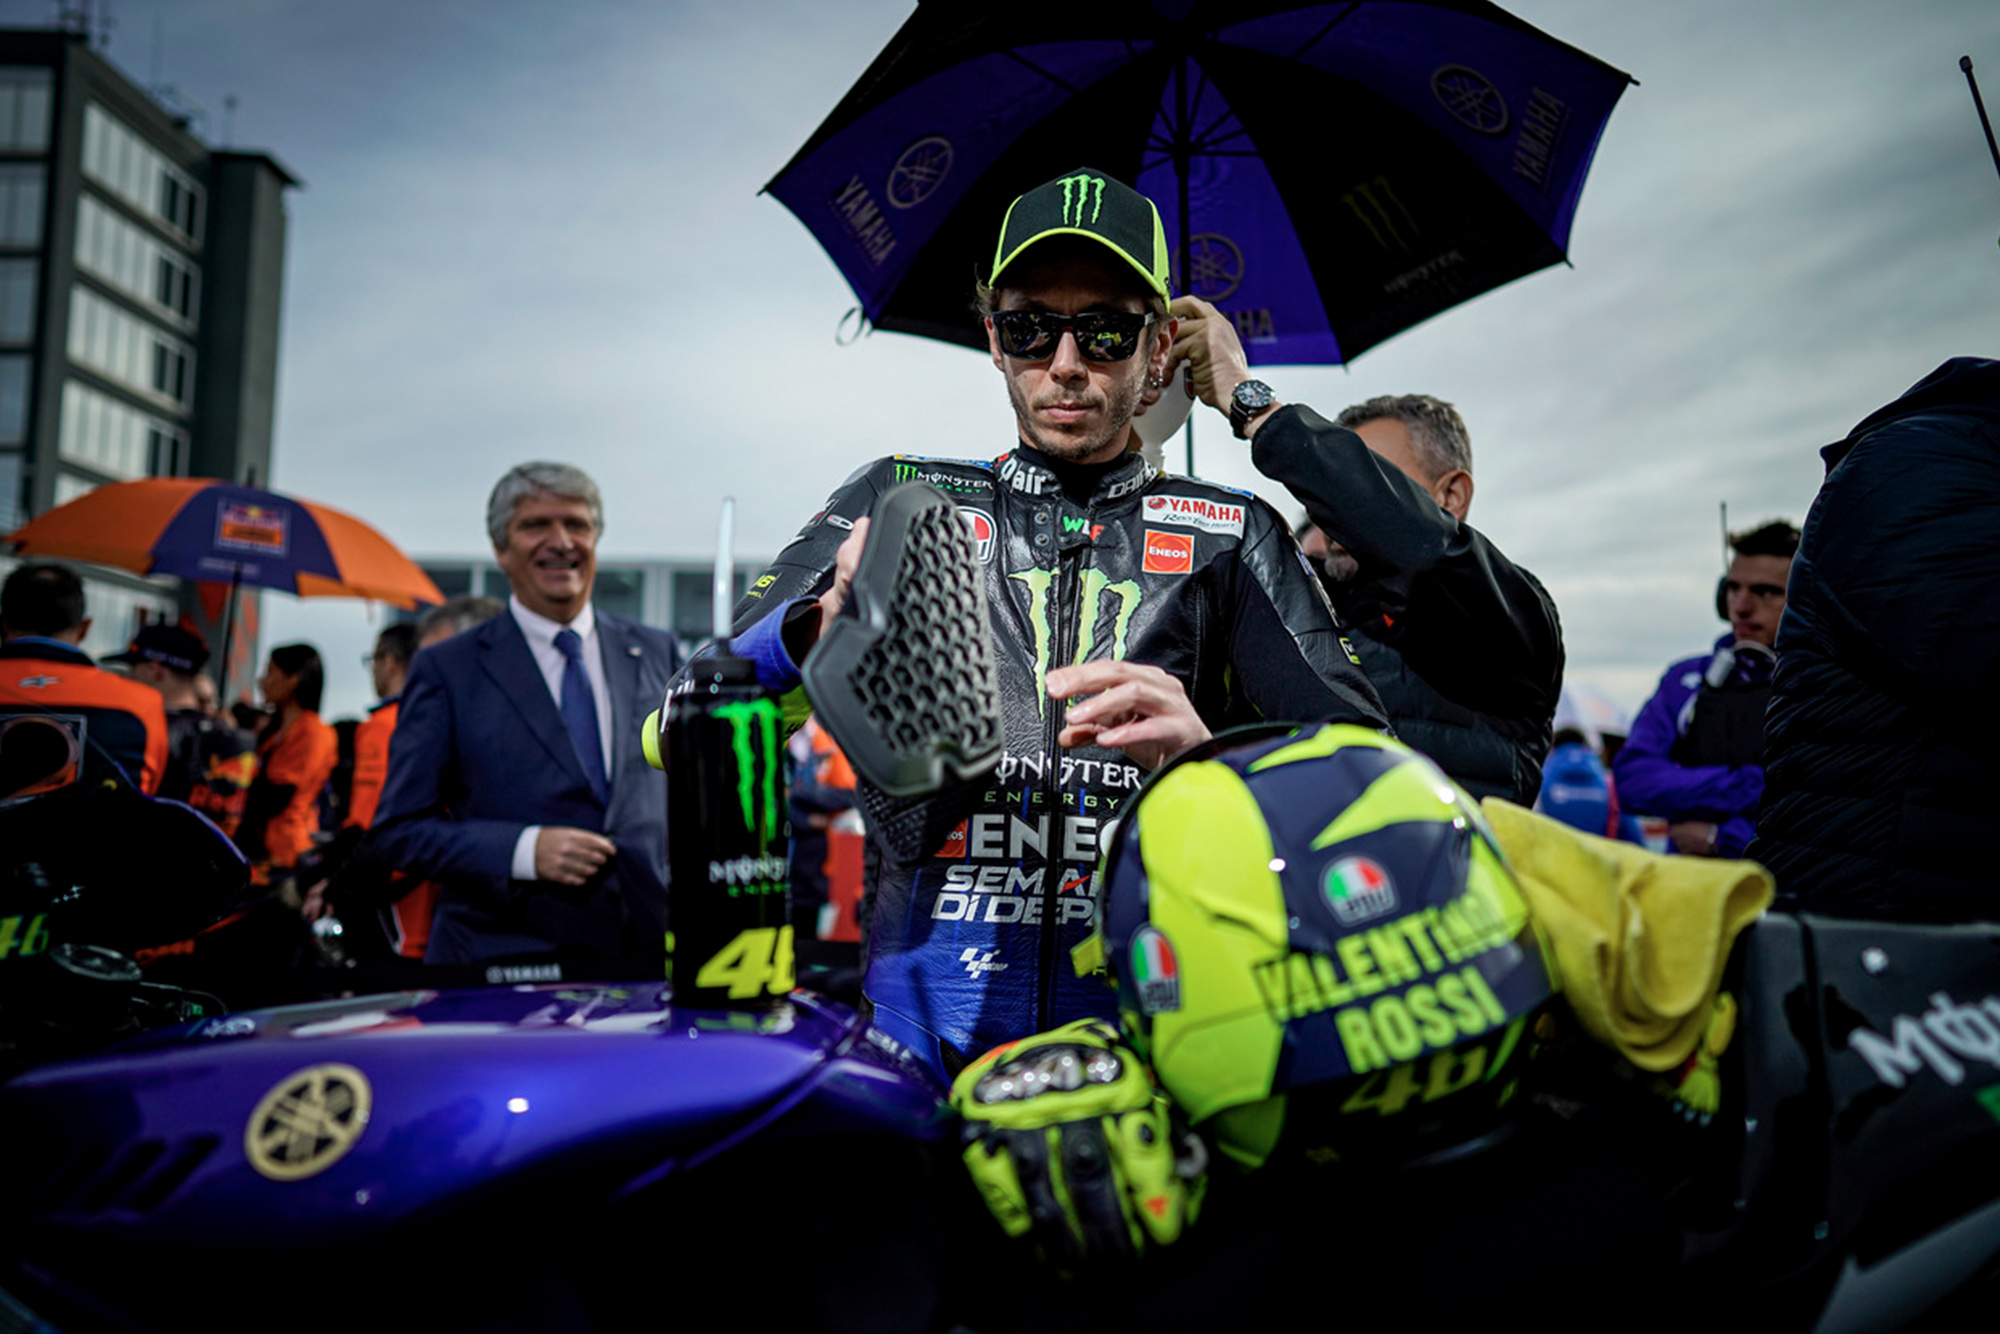 Valentino Rossi on the grid ahead of the 2019 MotoGP Grand Prix of Valencia